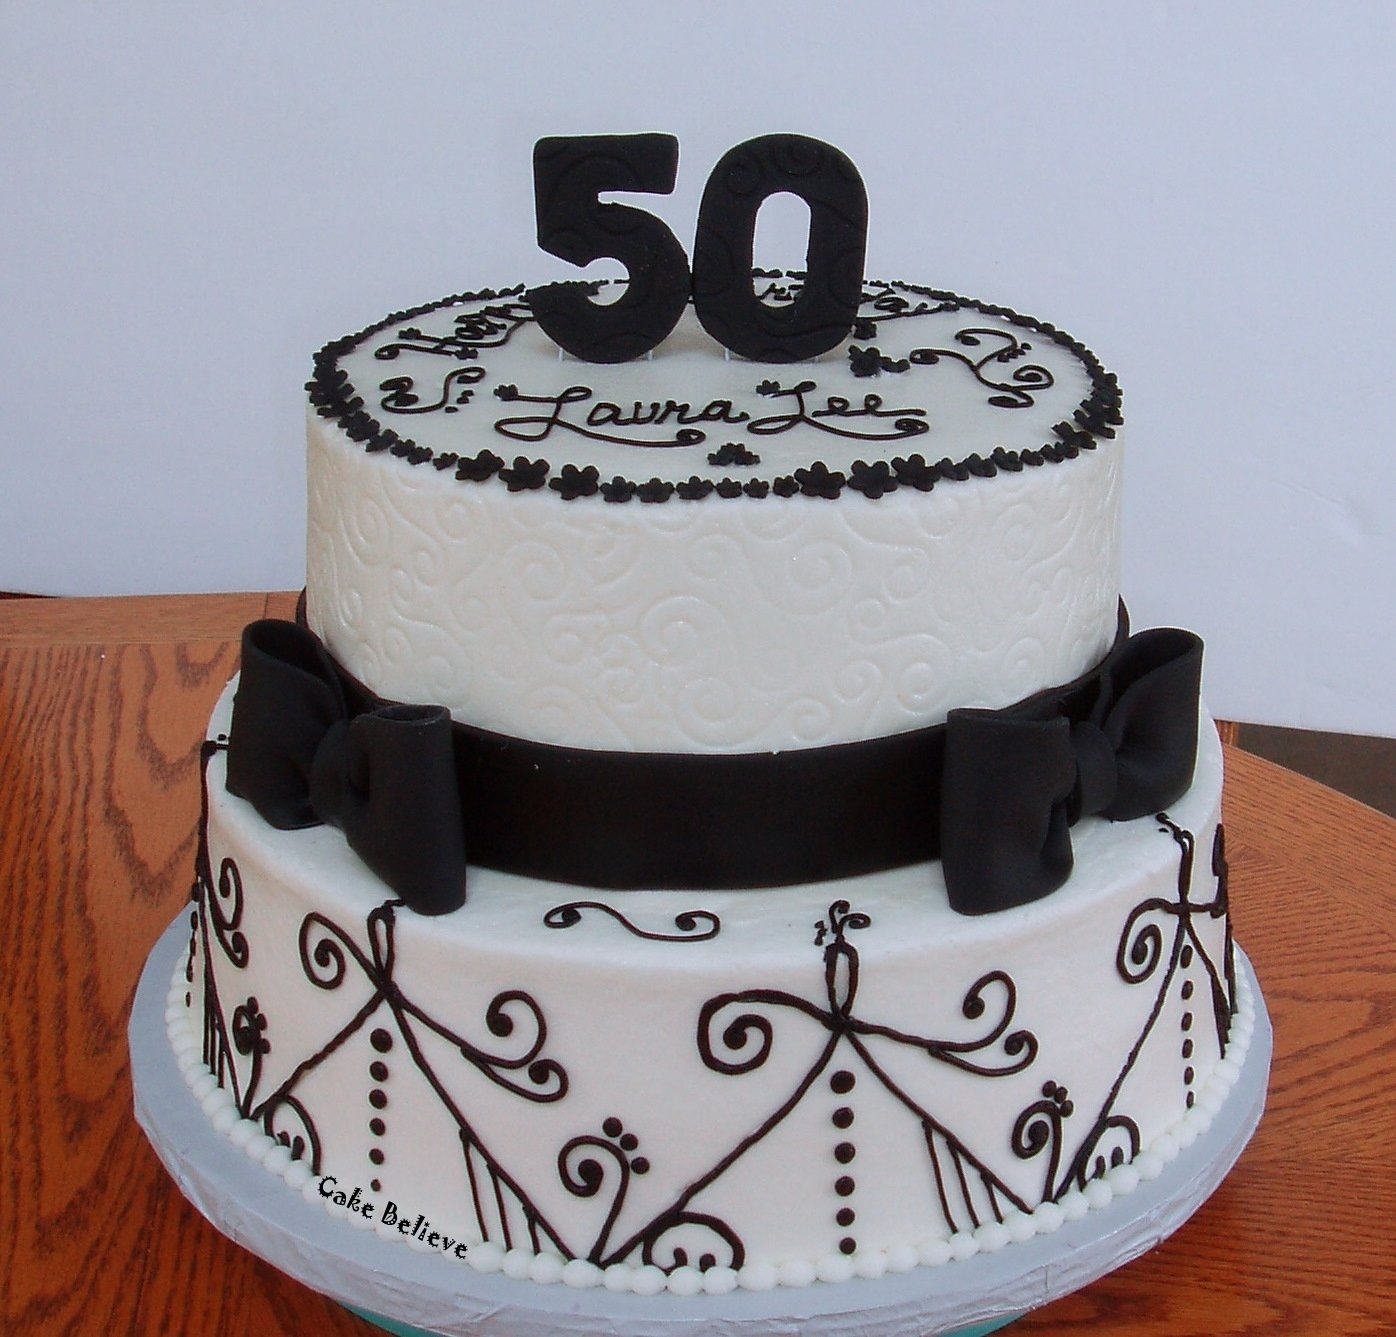 10 Pretty 50Th Birthday Cake Ideas For Men Cakes Images Coolest 50th